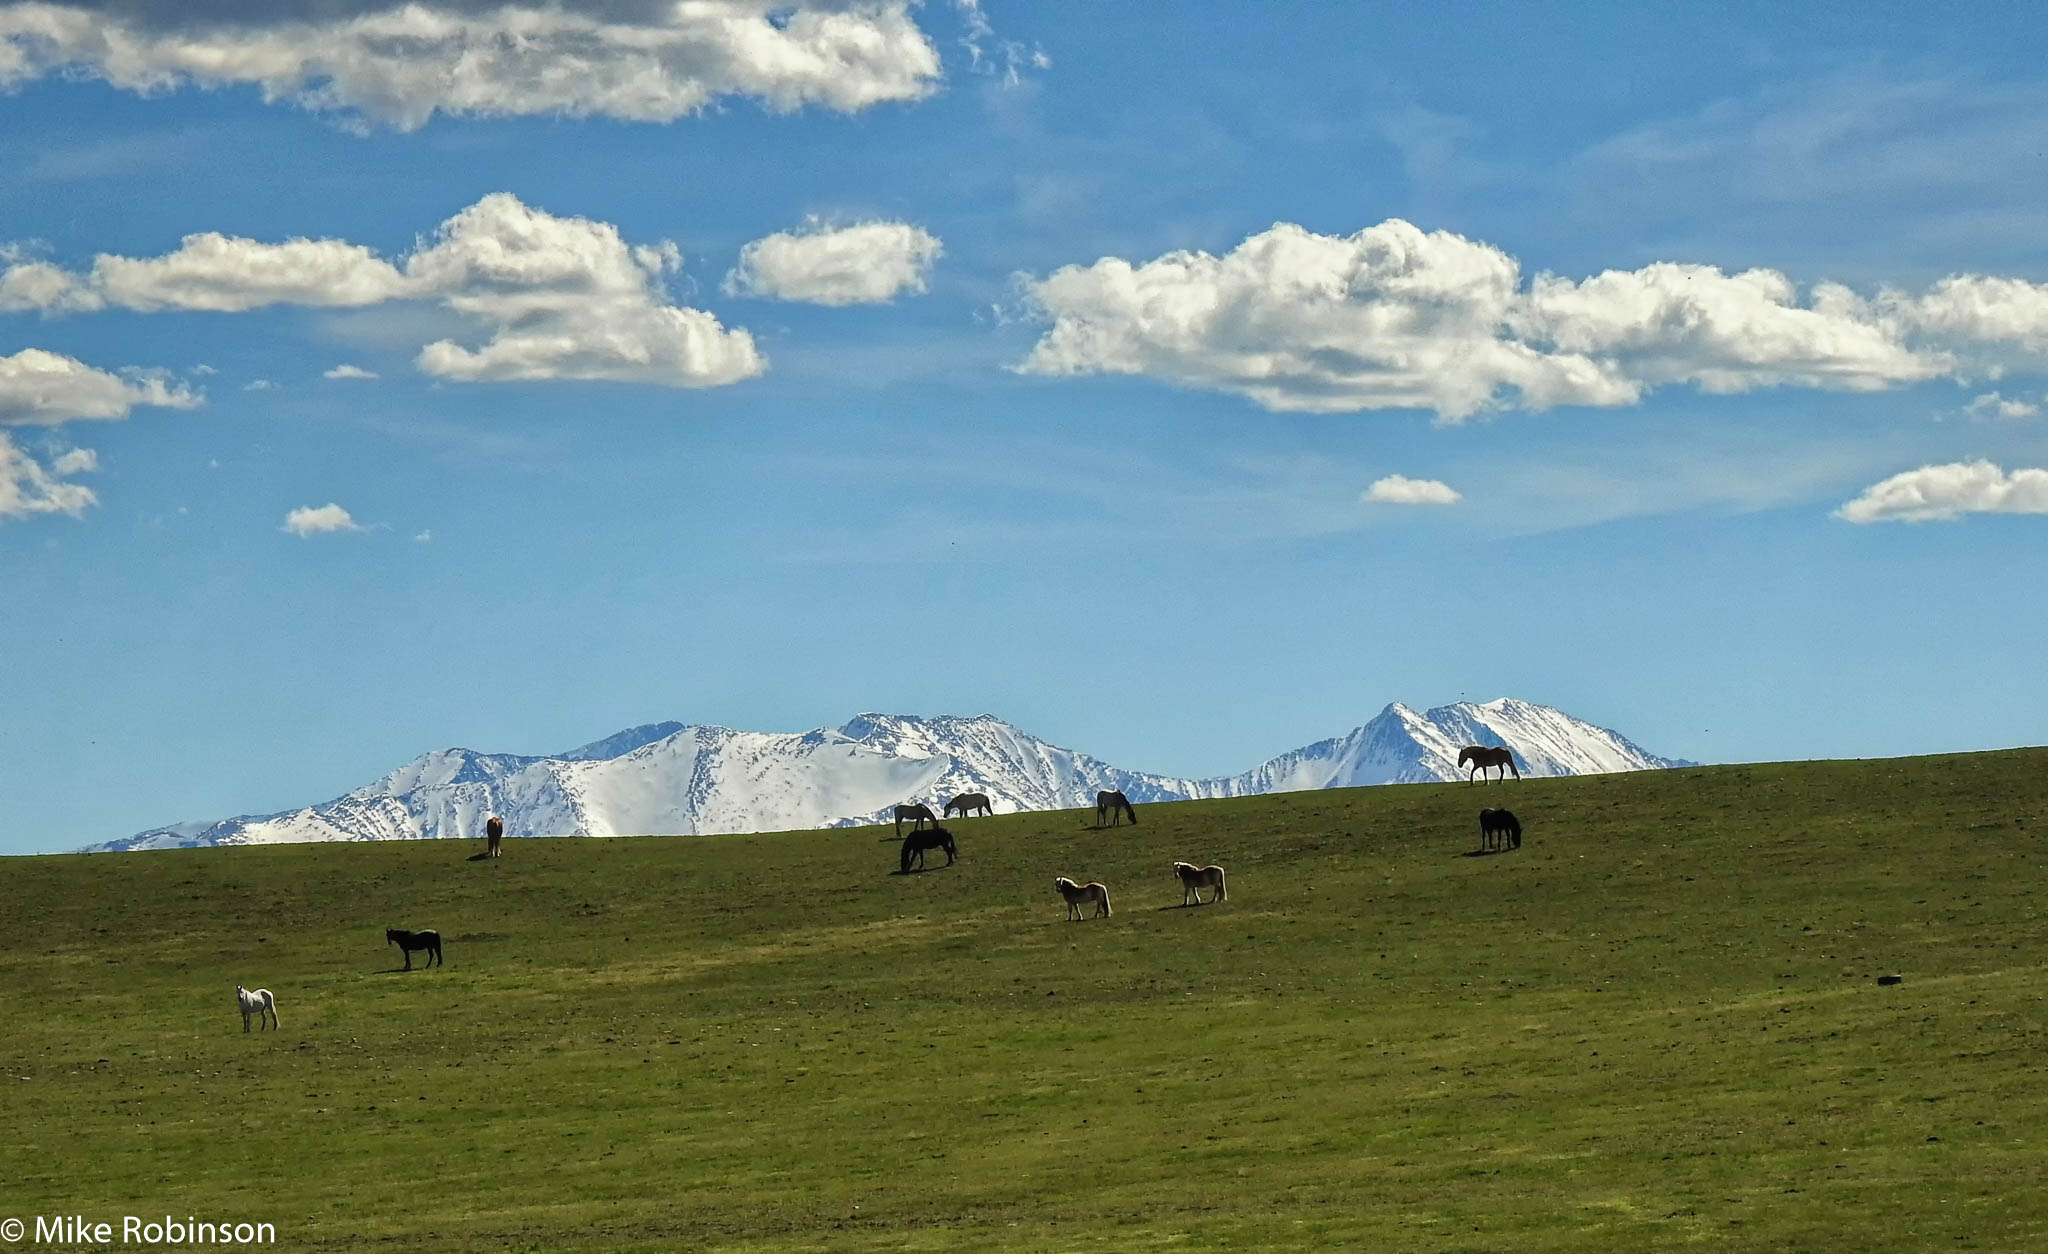 Crazy Mountains and Horses 2.jpg